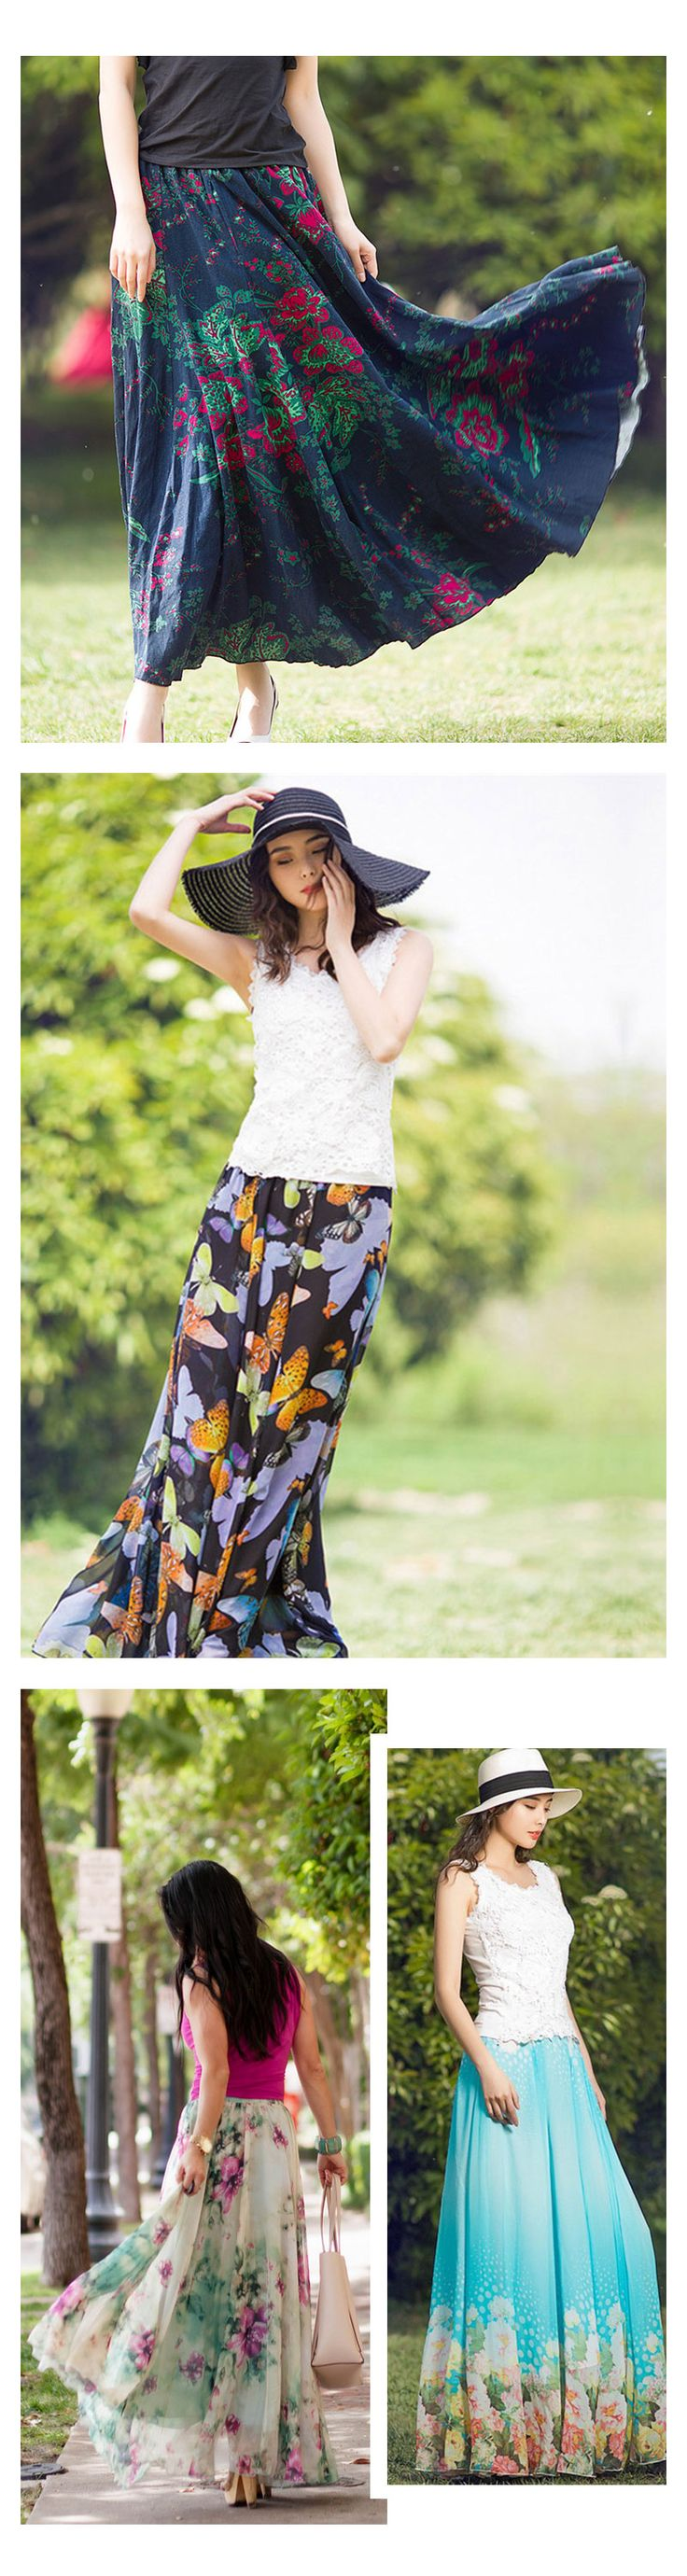 Women's Long Skirt, Slim & Stylish Styles